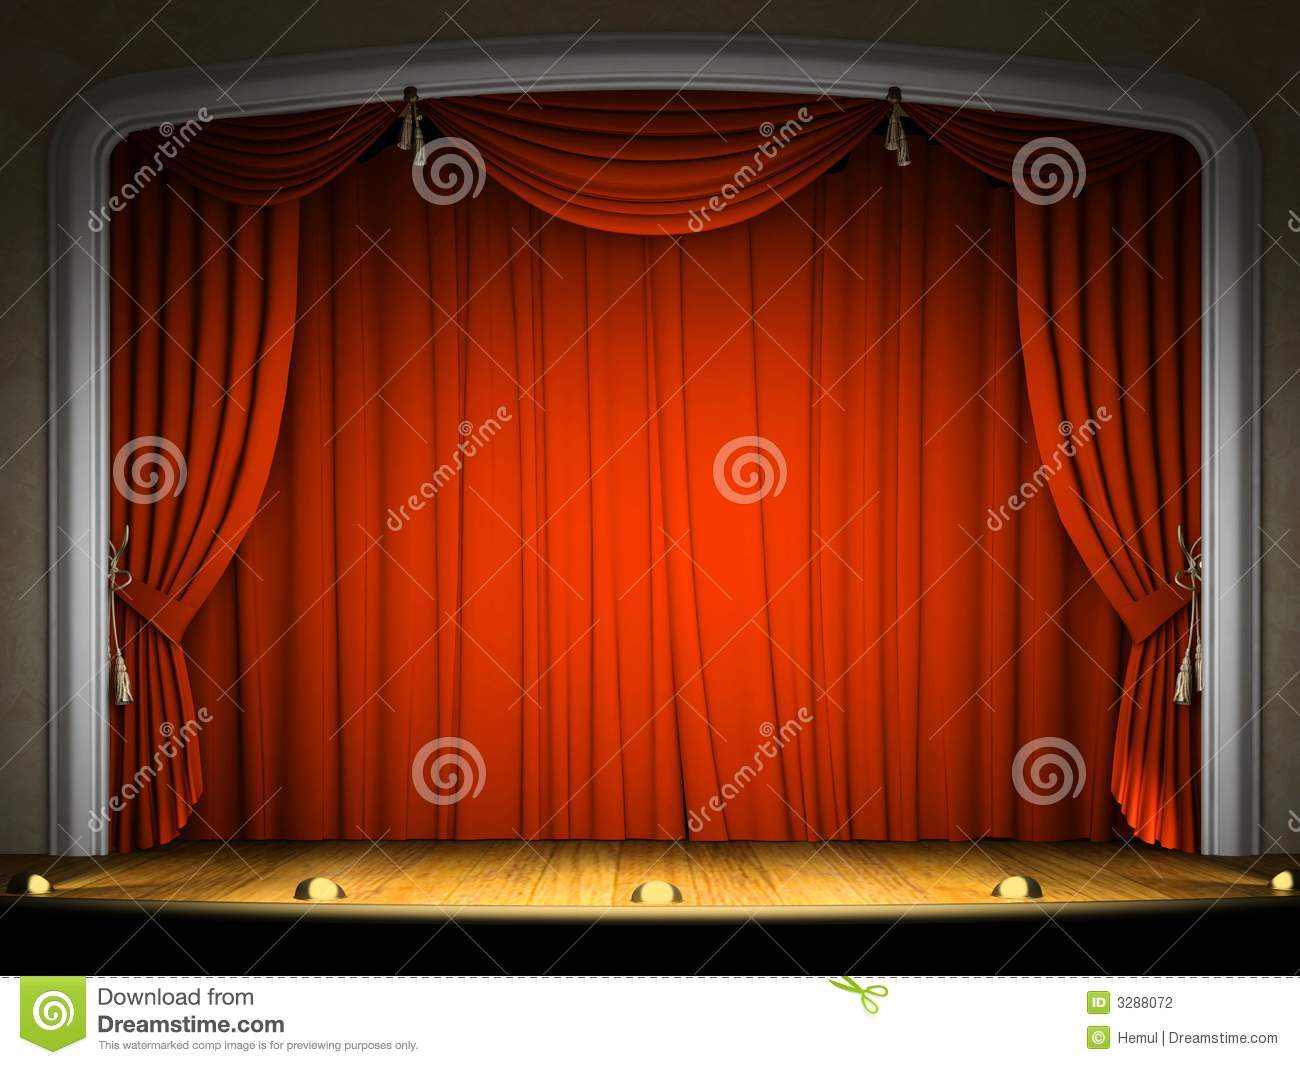 Big event red curtains with spotlight stock photo getty images - Empty Stage With Red Curtain Stock Photography Image 3288072